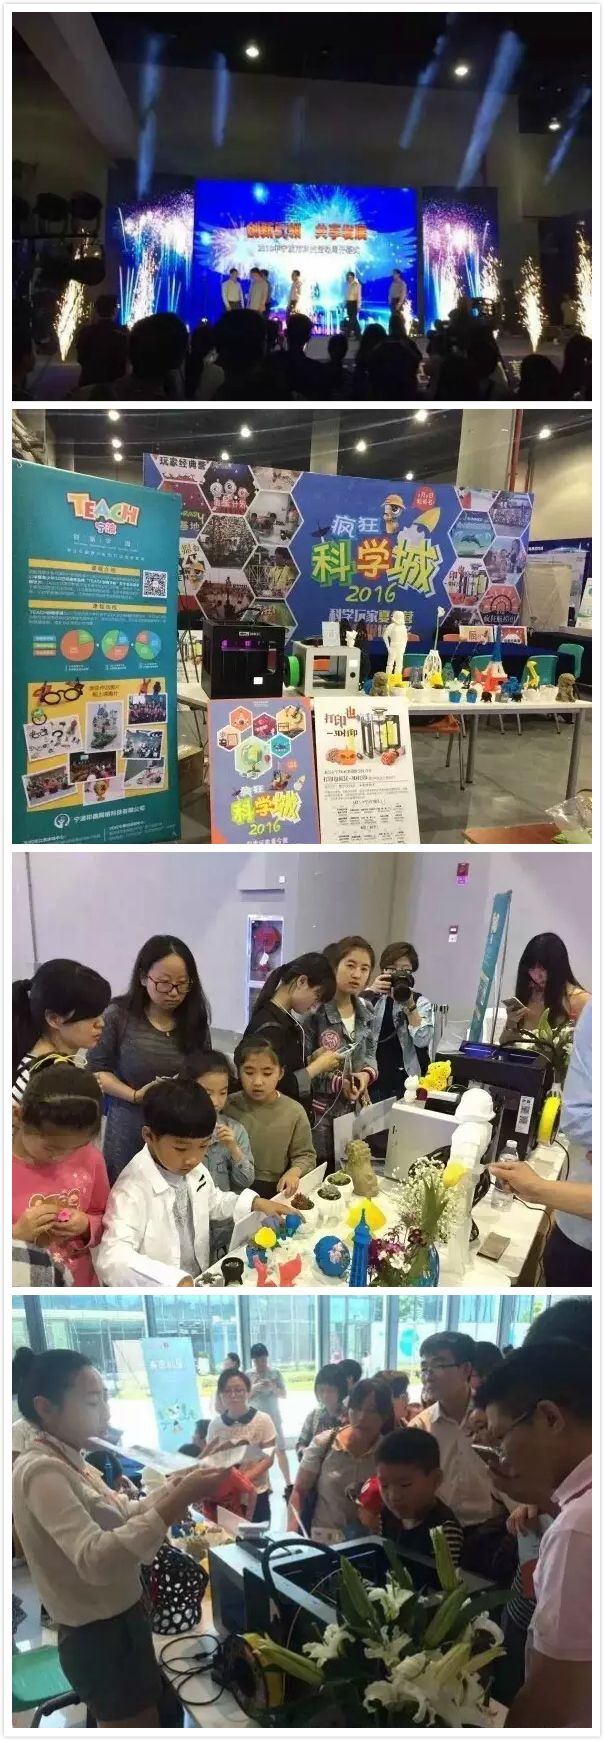 TEACH with MBot3D printer in Ningbo